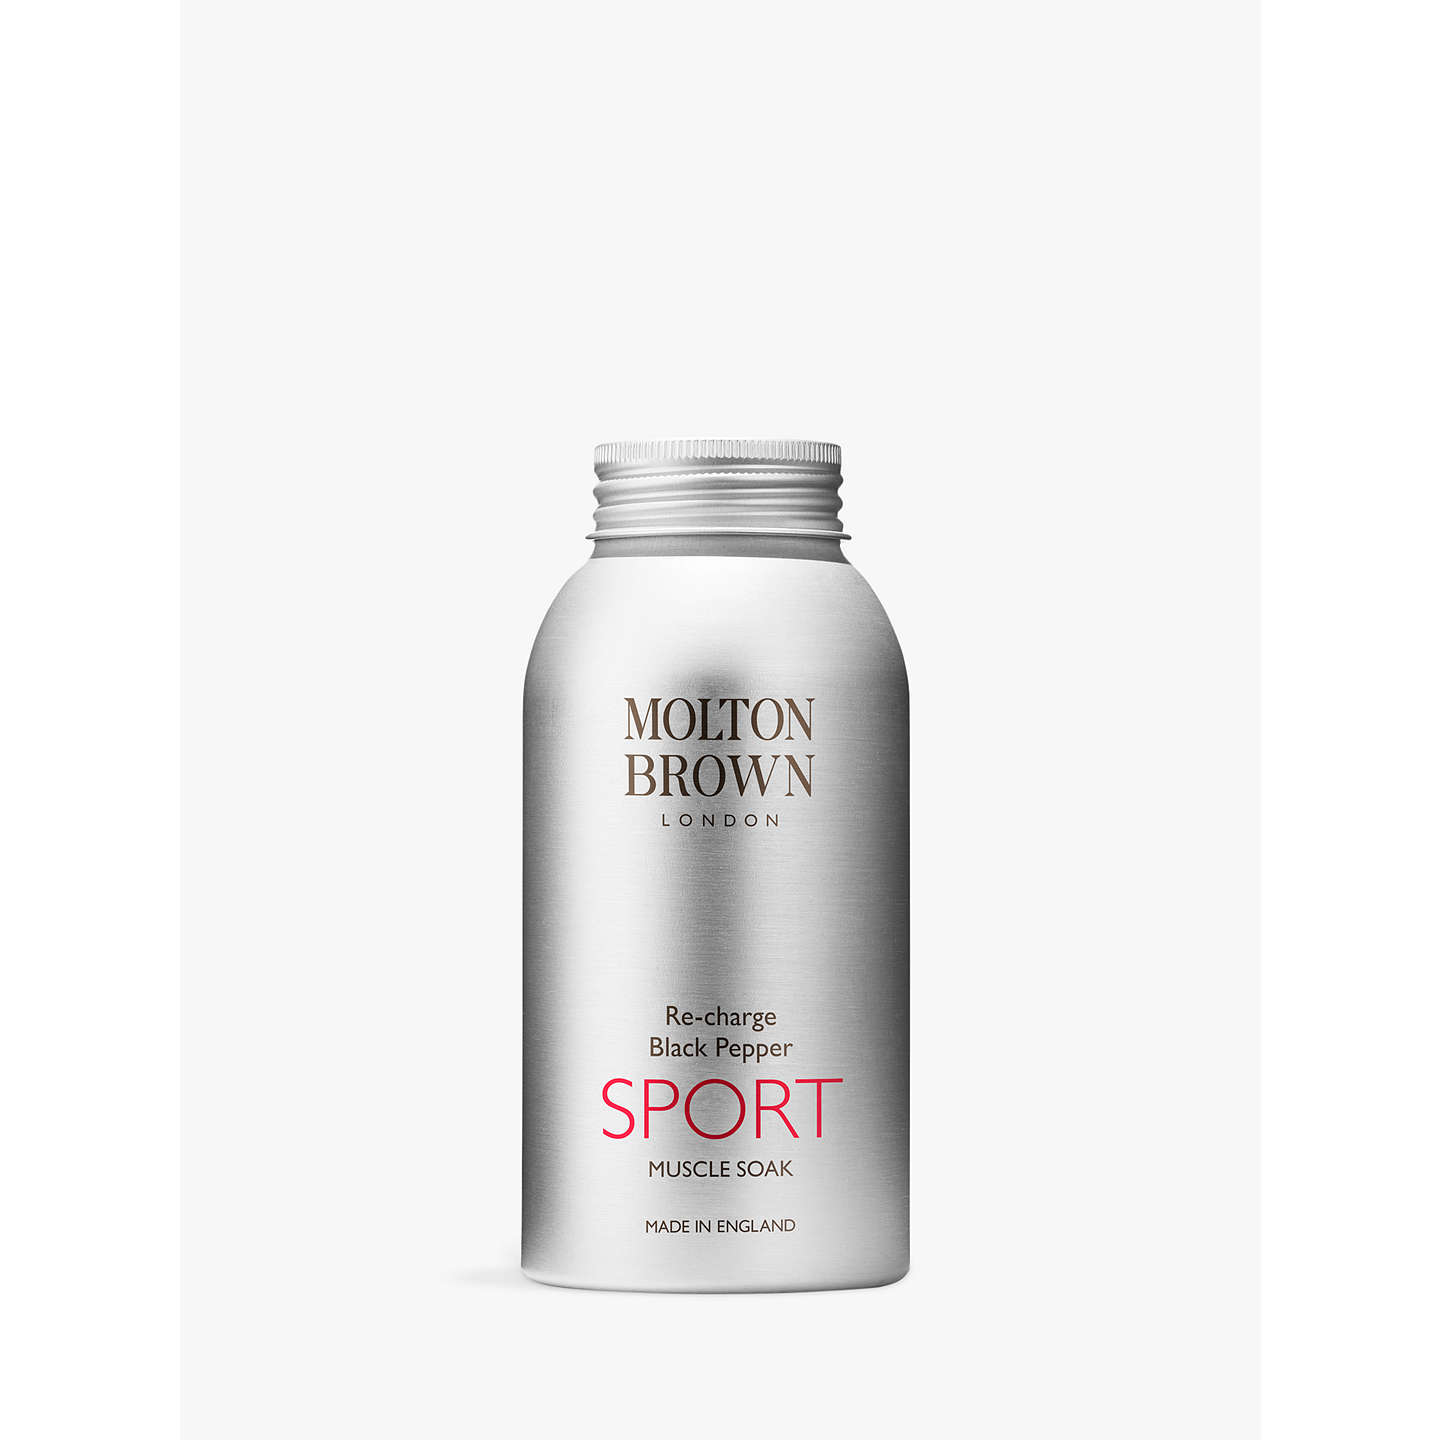 Clinique Body Cream Spf40 150ml At John Lewis: Molton Brown Re-Charge Black Pepper Sport Muscle Soak